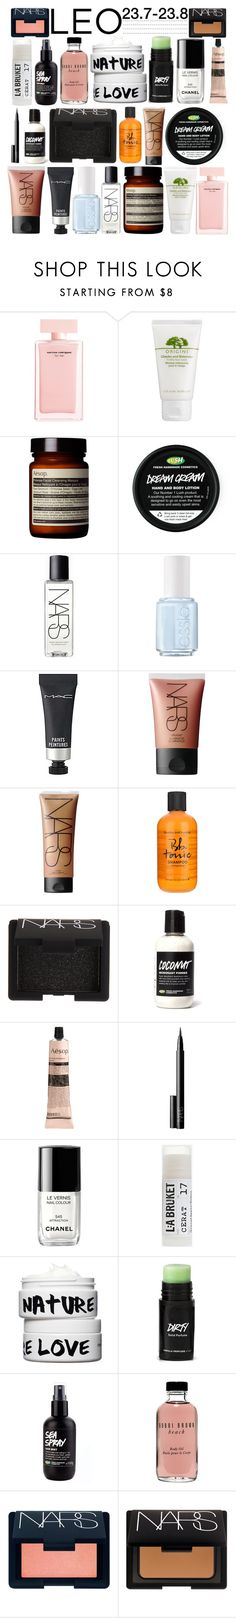 """""""LEO // CNTST"""" by stylesgotstyle ❤ liked on Polyvore featuring beauty, Narciso Rodriguez, Origins, Aesop, NARS Cosmetics, Essie, MAC Cosmetics, Bumble and bumble, Chanel and Toast"""